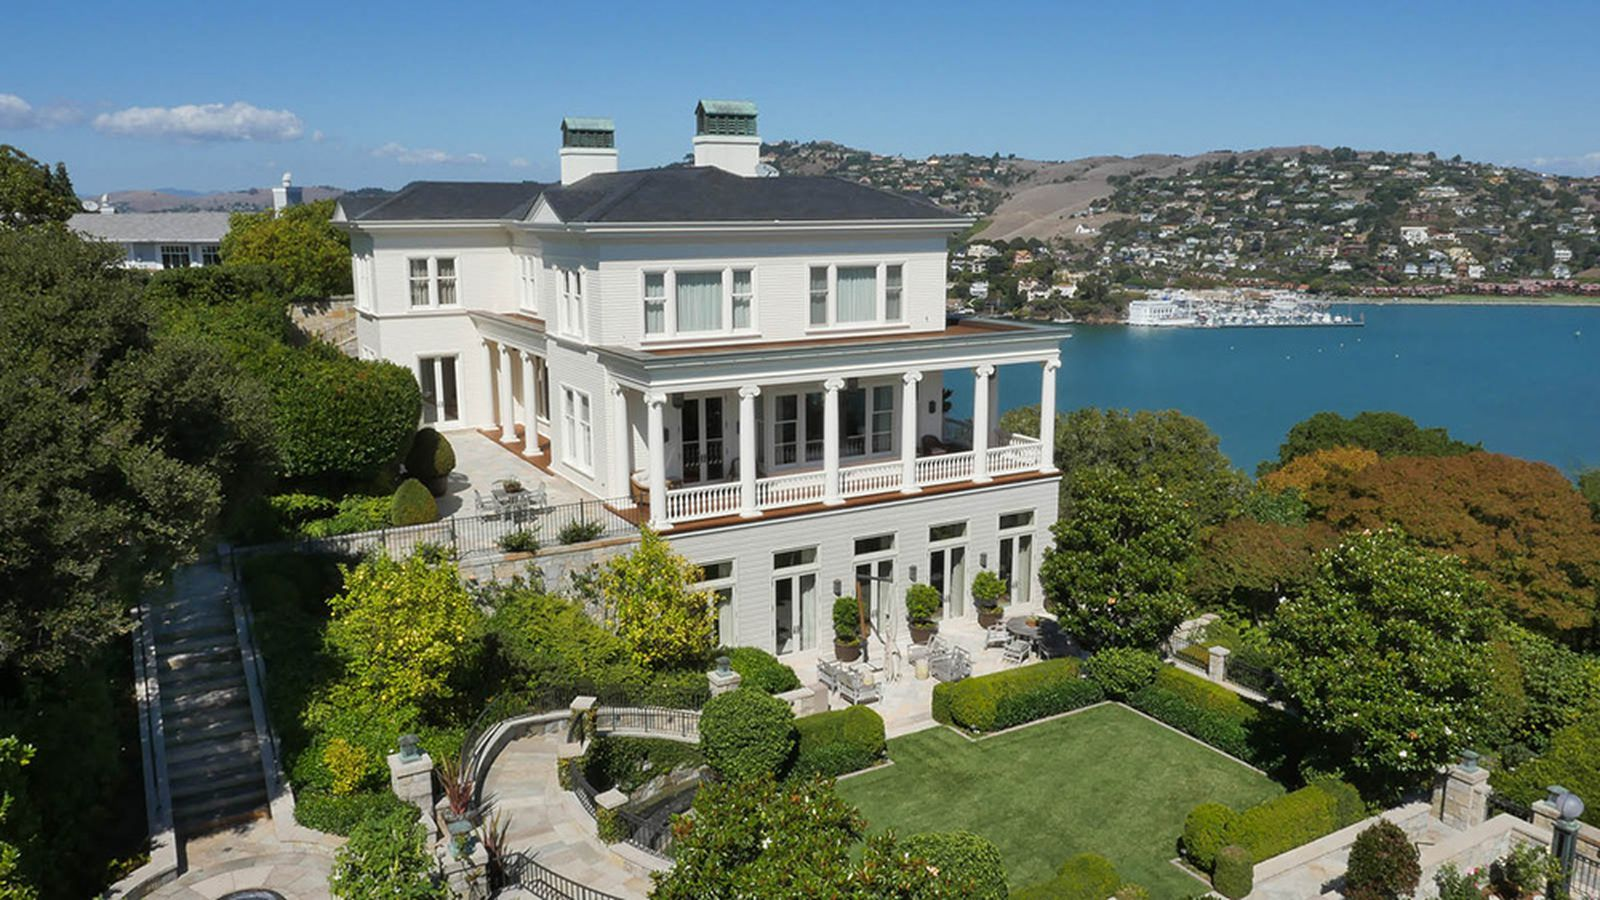 Exclusive locksley hall in belvedere sells for 47 5m for Most expensive homes for sale in california